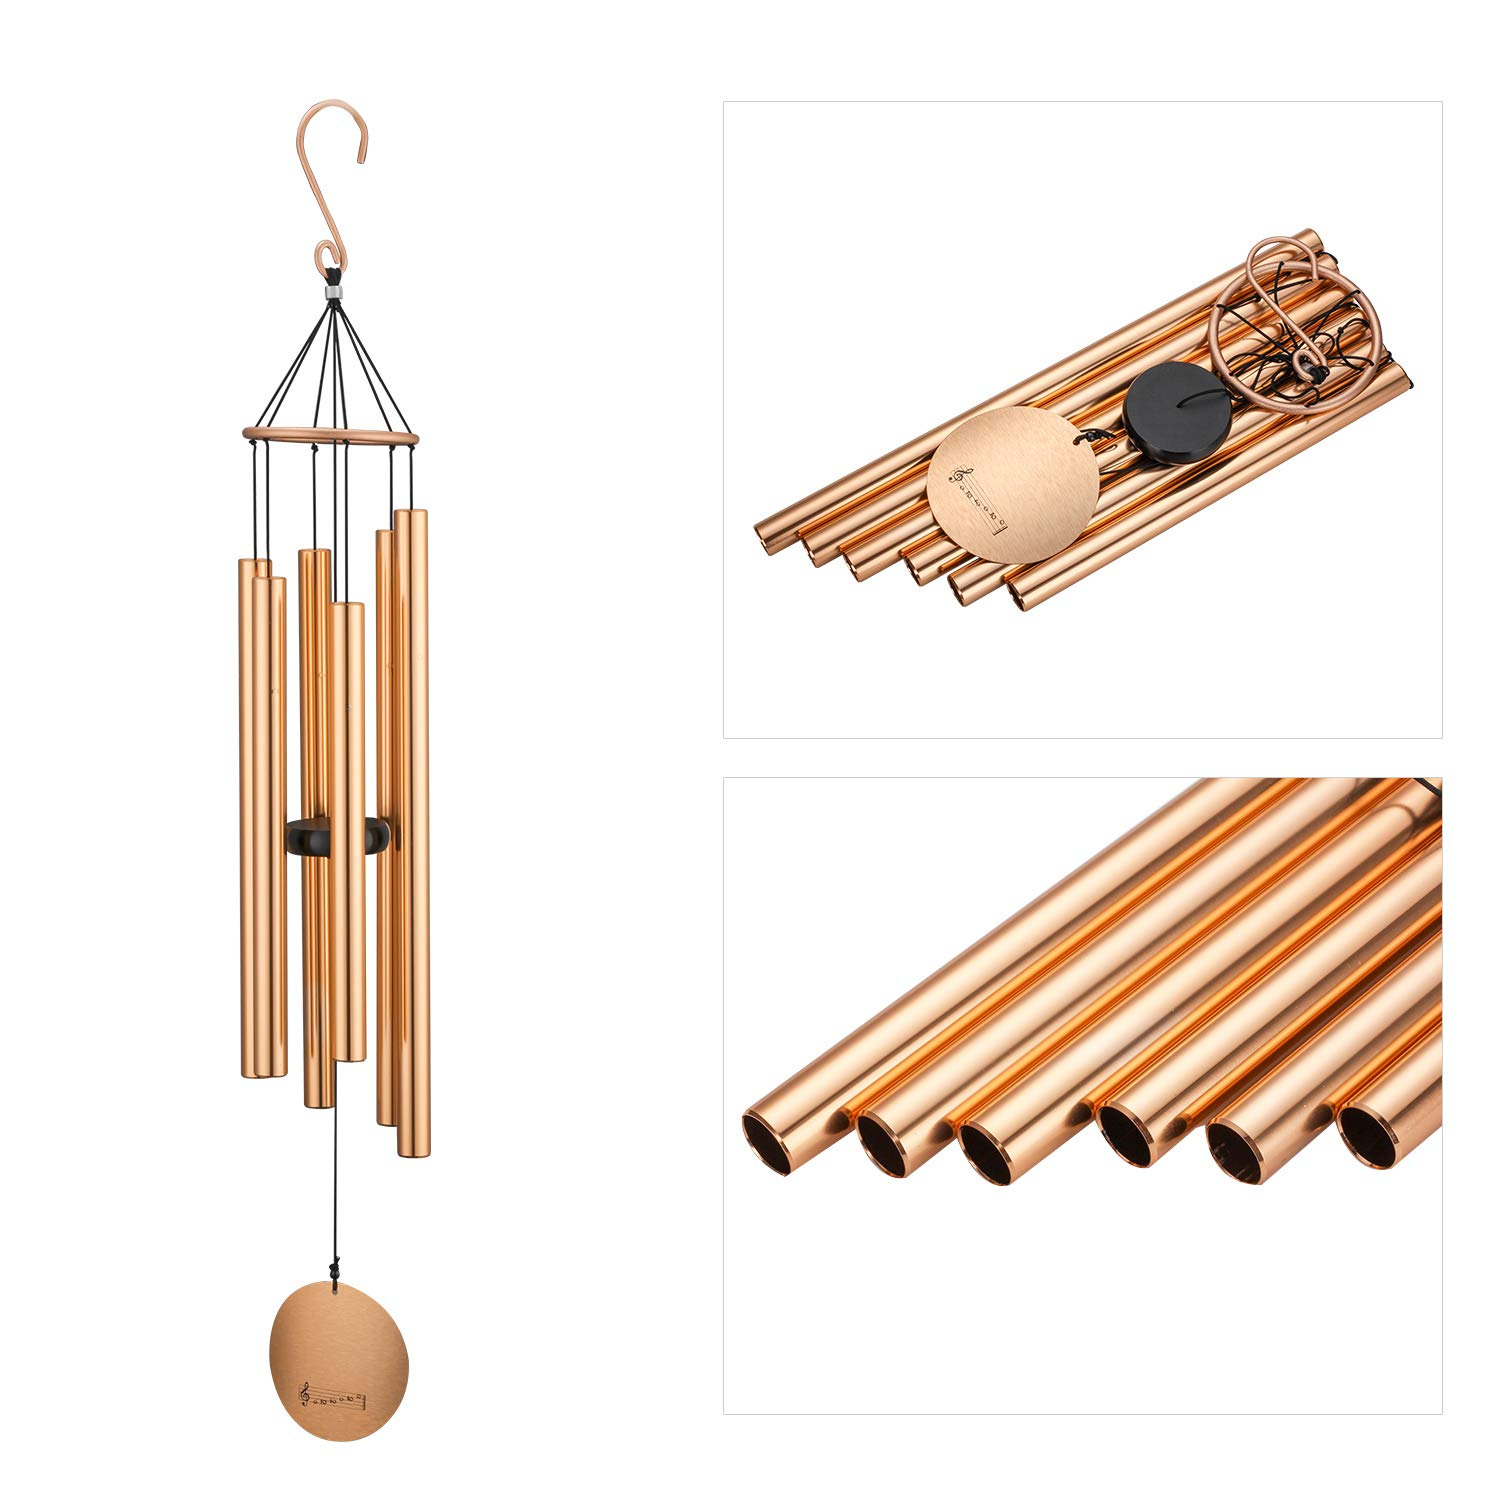 Metal Wind Chimes Outdoor , Large Garden Amazing Grace Windchime with 6 Aluminum Tubes , Tuned memorial Windchime for Patio and Terrace,Best Large Musical Windchime with S Hook for Indoor and Outdoor